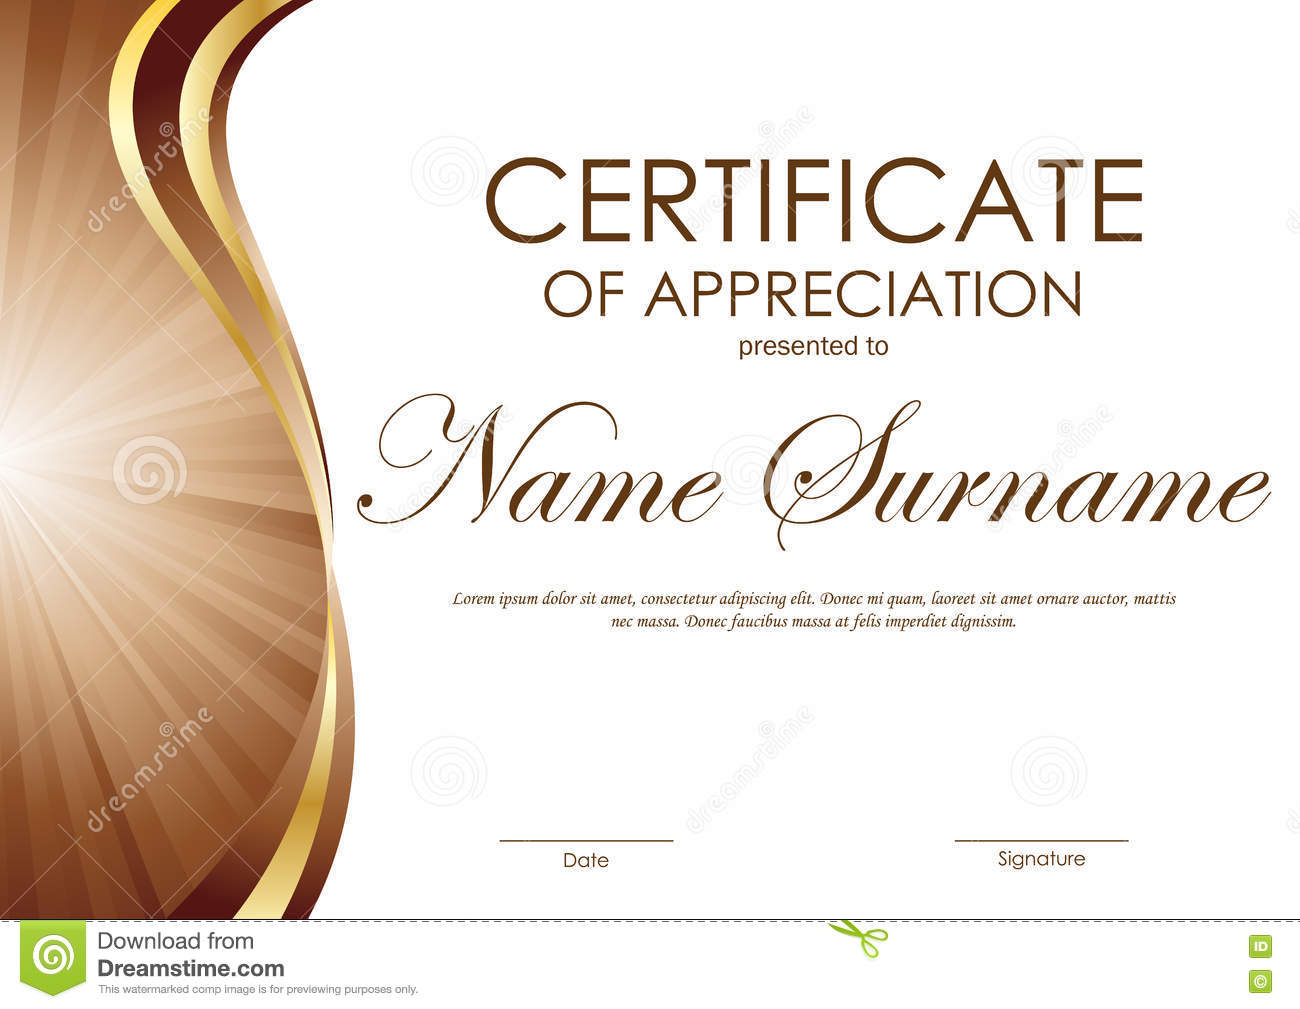 Certificate of appreciation template vector illustration for Free certificate of appreciation template downloads